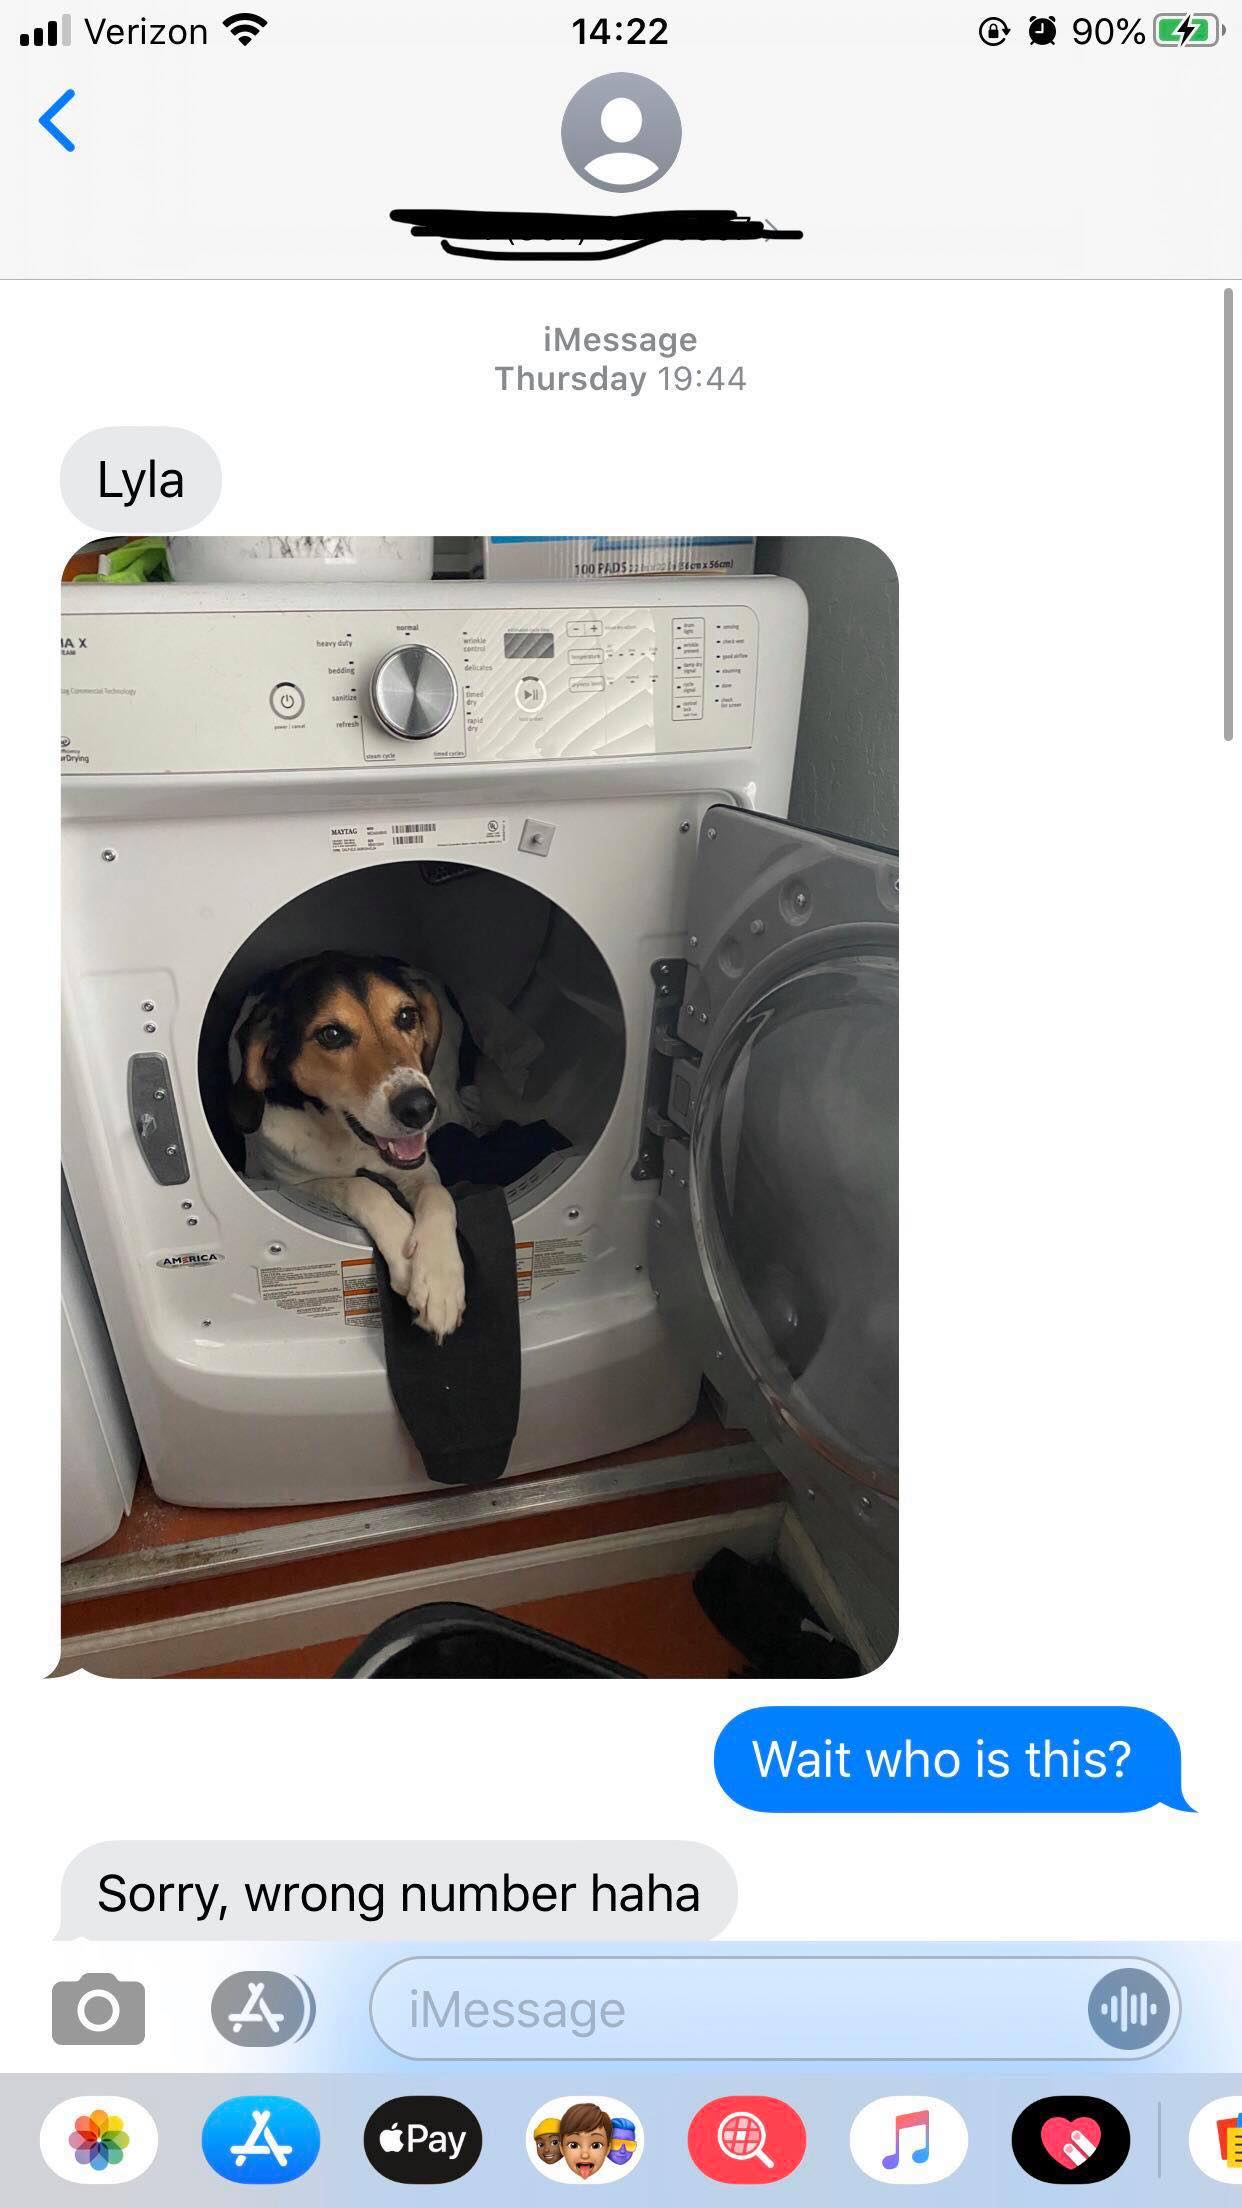 Woman receives accidental text of dog in dryer